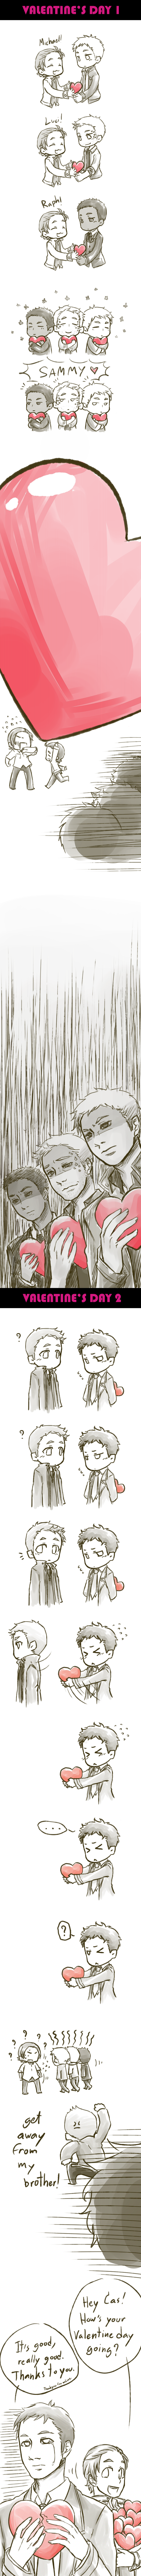 VALENTINE'S DAY by ILsama.deviantart.com on @deviantART